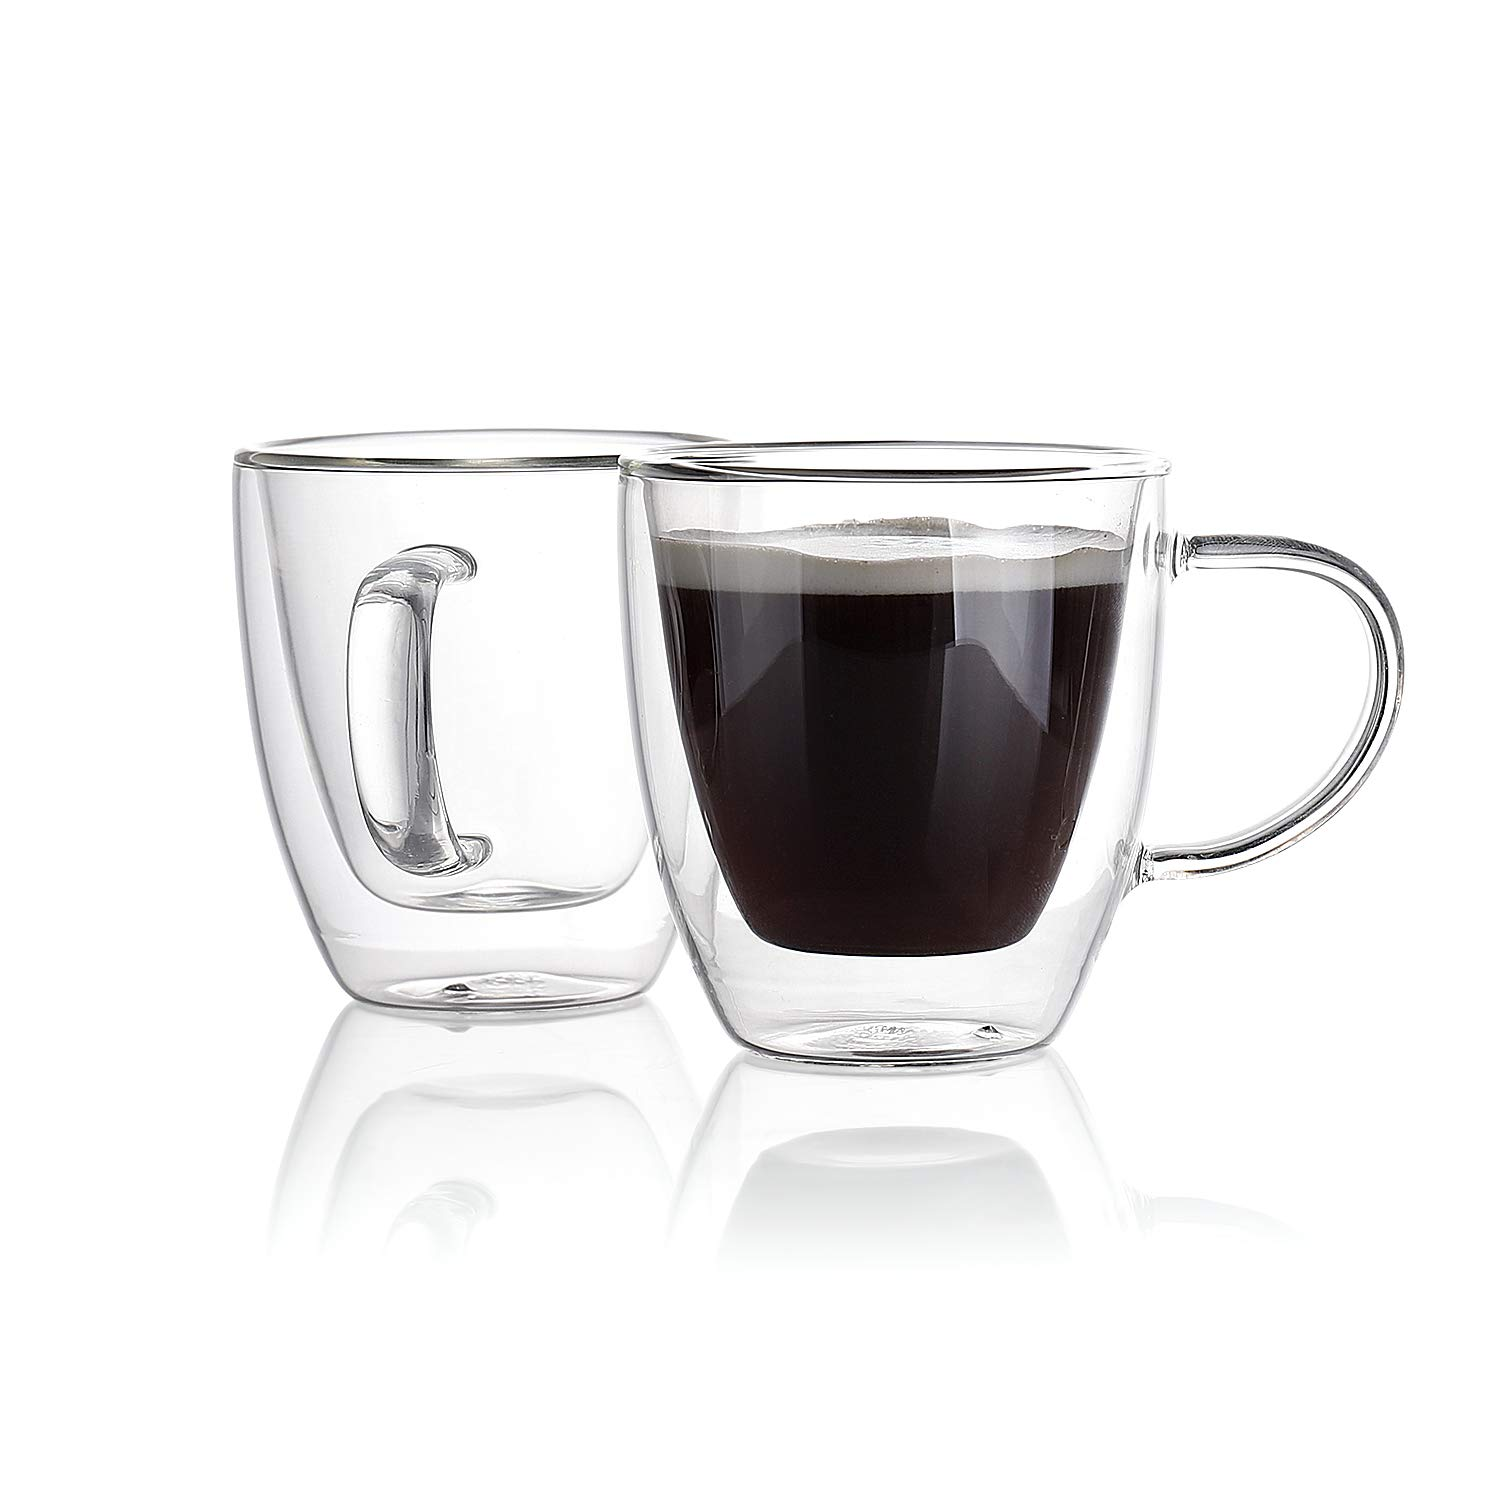 Sweese 4610 Espresso Cups Shot Glass Coffee 5 Oz Set of 2 - Double Wall Insulated Glass Mugs with Handle, Everyday Coffee Glasses Cups Perfect for Espresso Machine and Coffee Maker